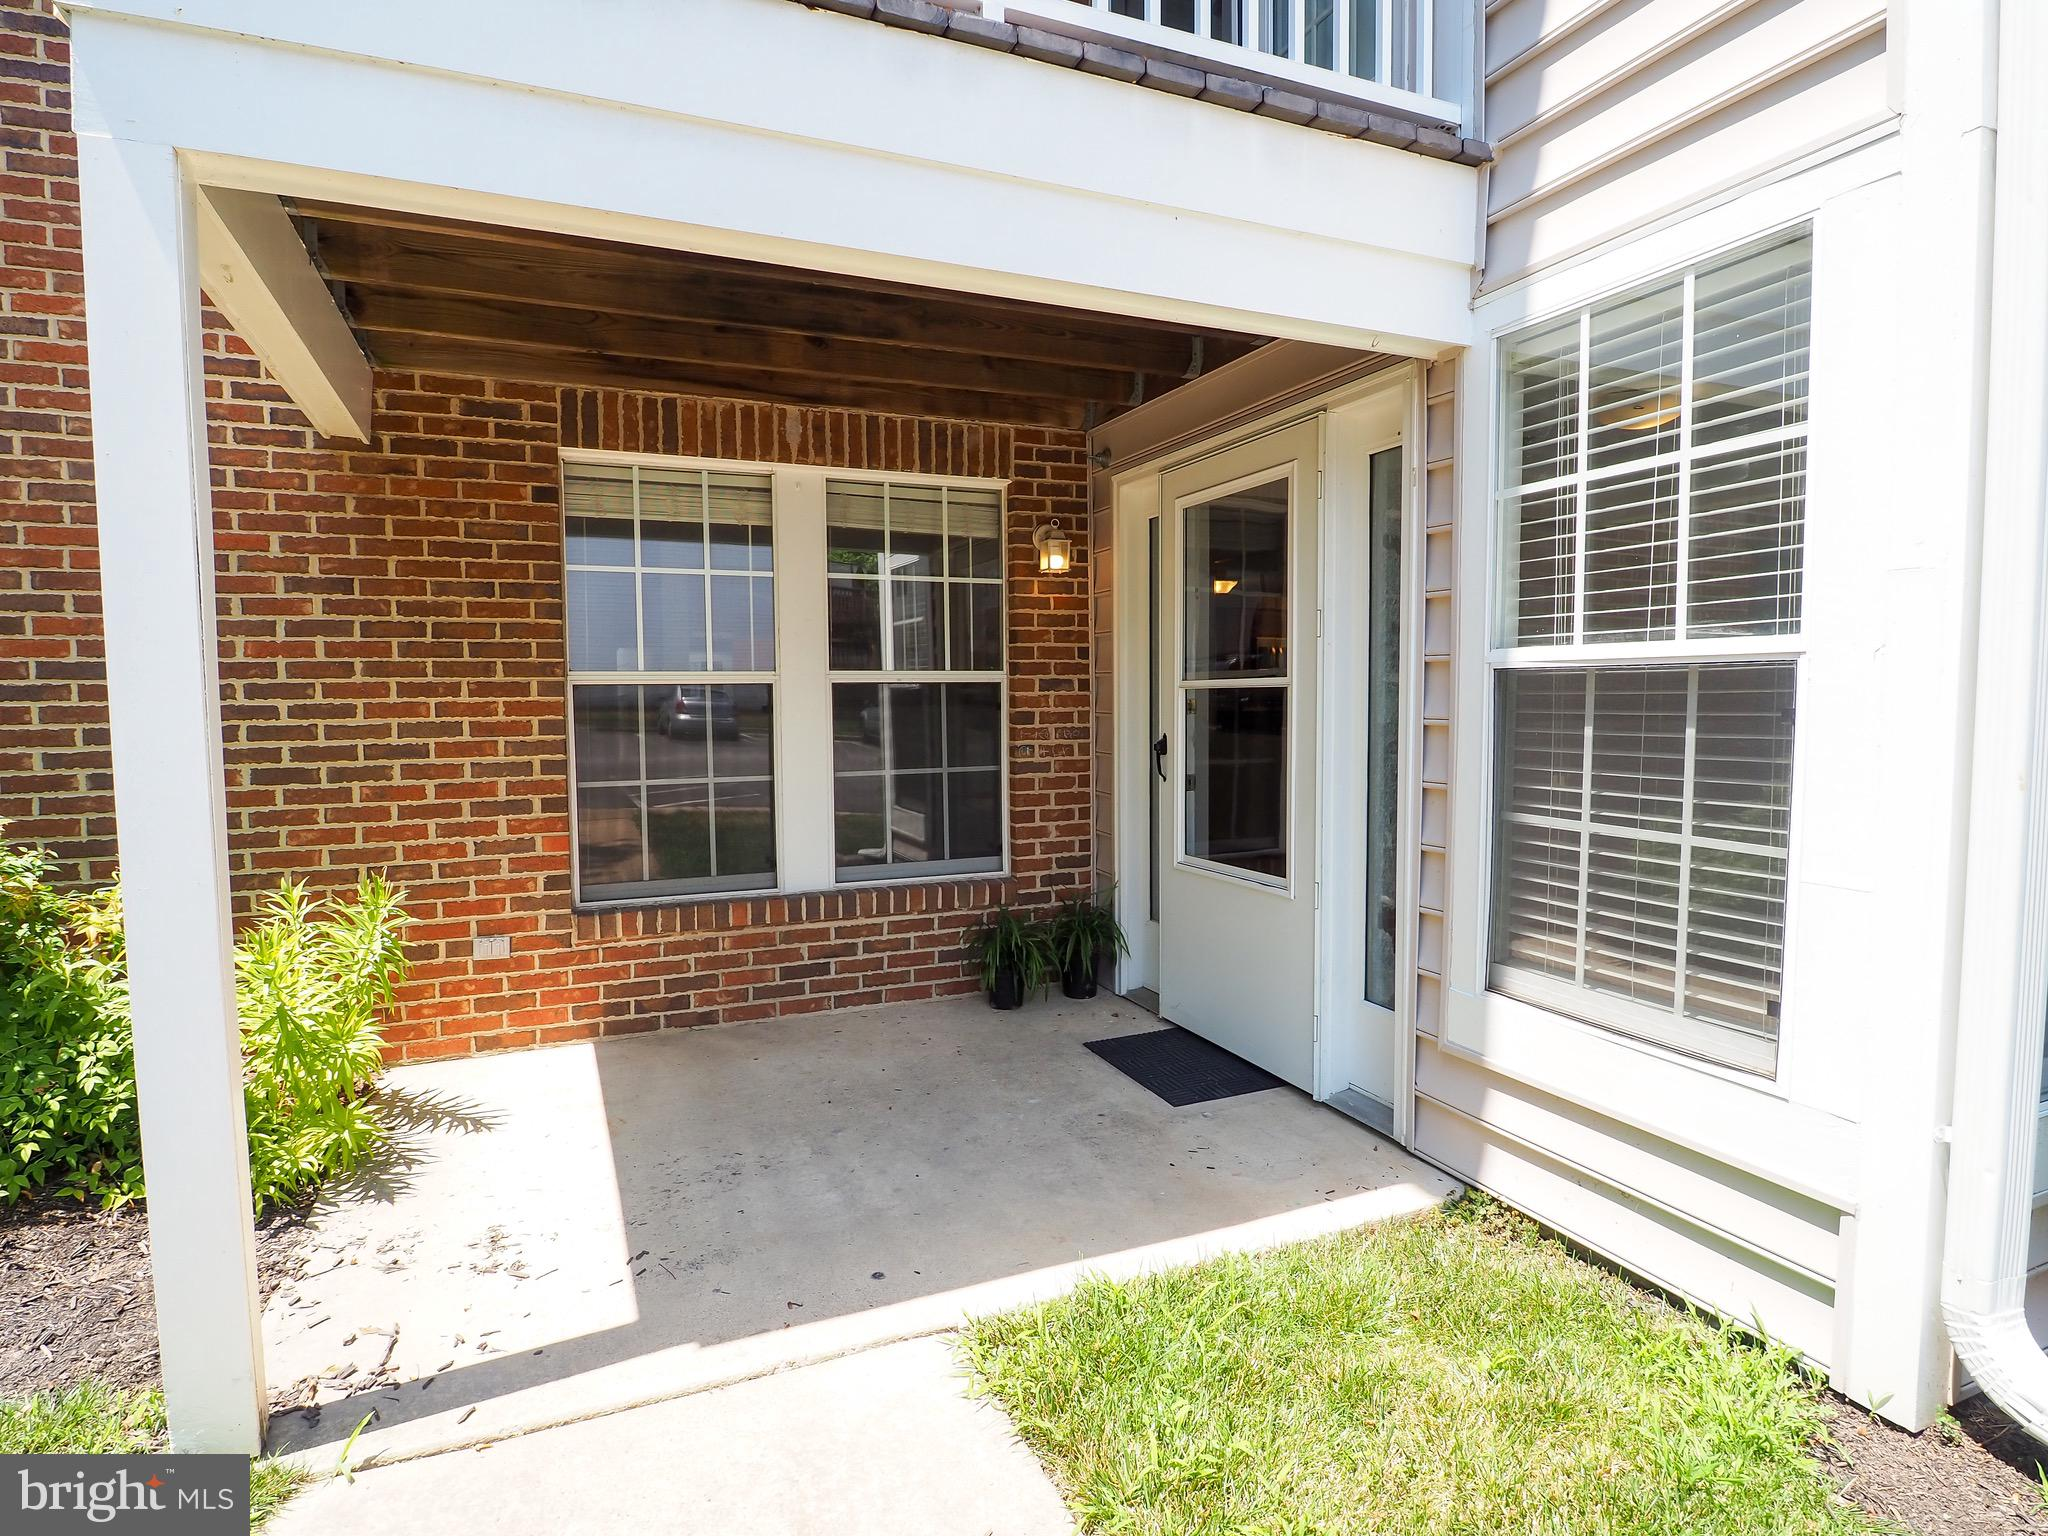 Welcome home! This sun-filled, updated 2 bedroom, 2 bathroom condo awaits a new owner.  New granite countertops, new smart fridge, new microwave, new paint, and new carpet just installed.  Complete with a ground level entrance with a front porch, dining room, living room, and oversized laundry room.   Within walking distance to shopping and restaurants at Dillingham Square, and just around the corner from one of the many Marinas that Lake Ridge has to offer. Won't last long!